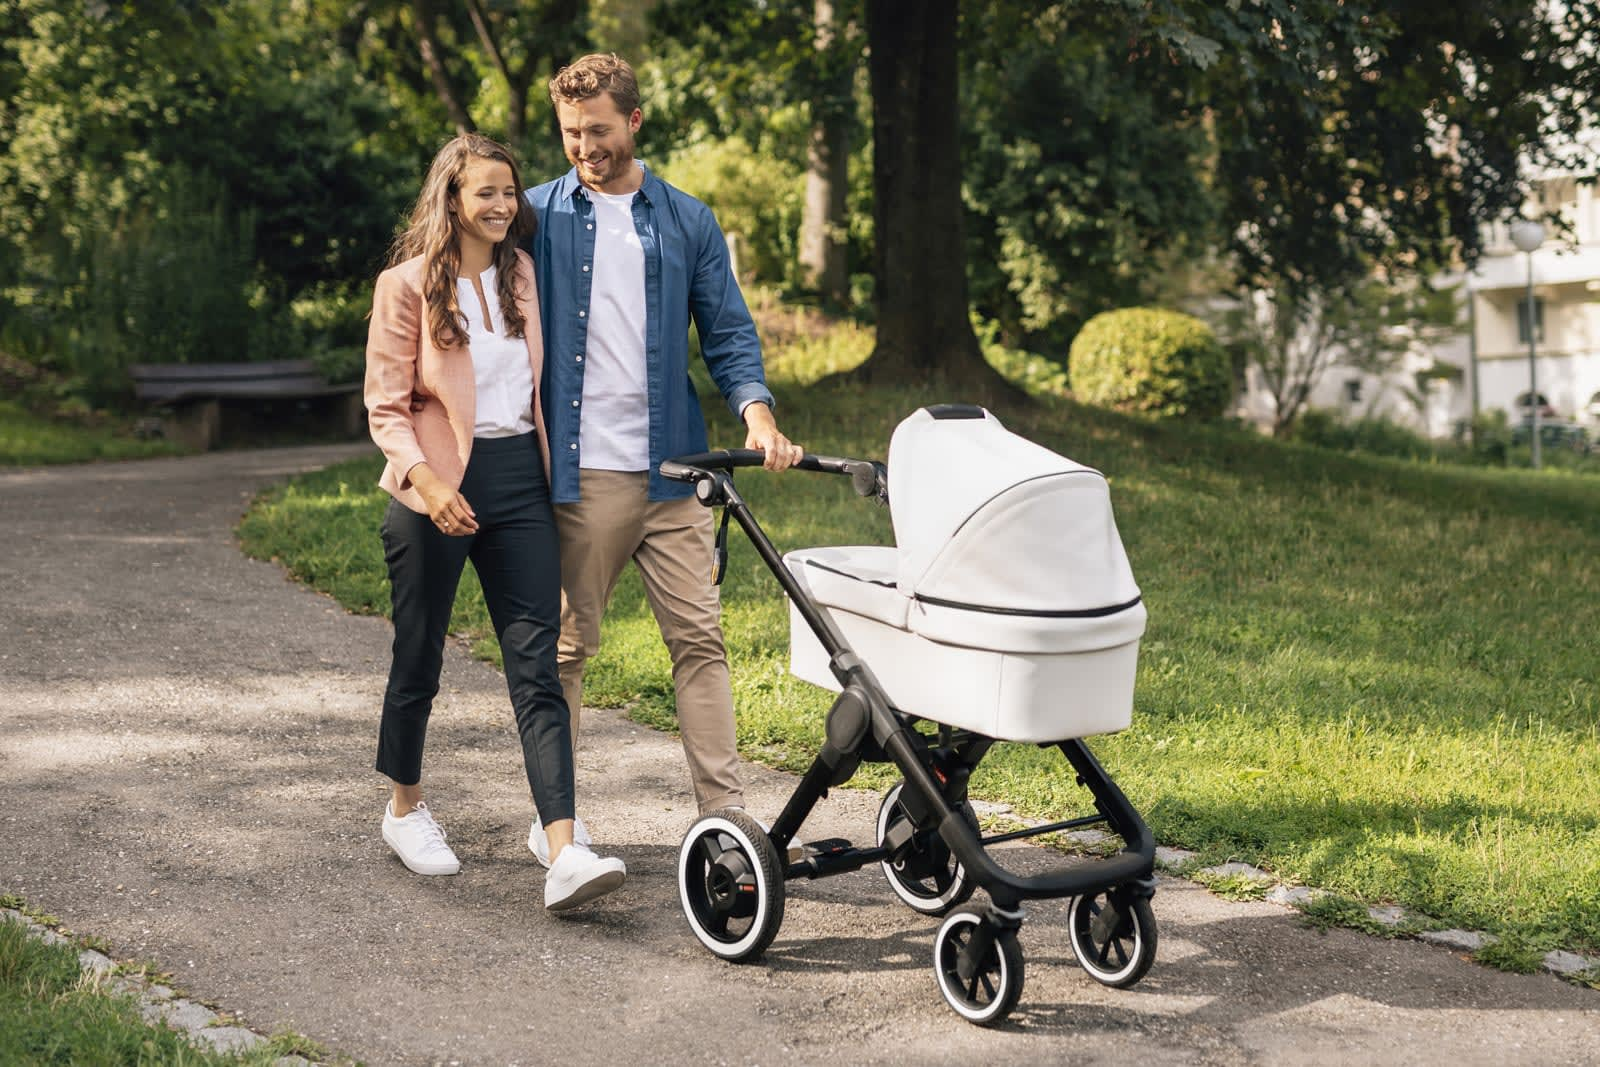 Bosch's electric stroller tech helps carry your baby uphill